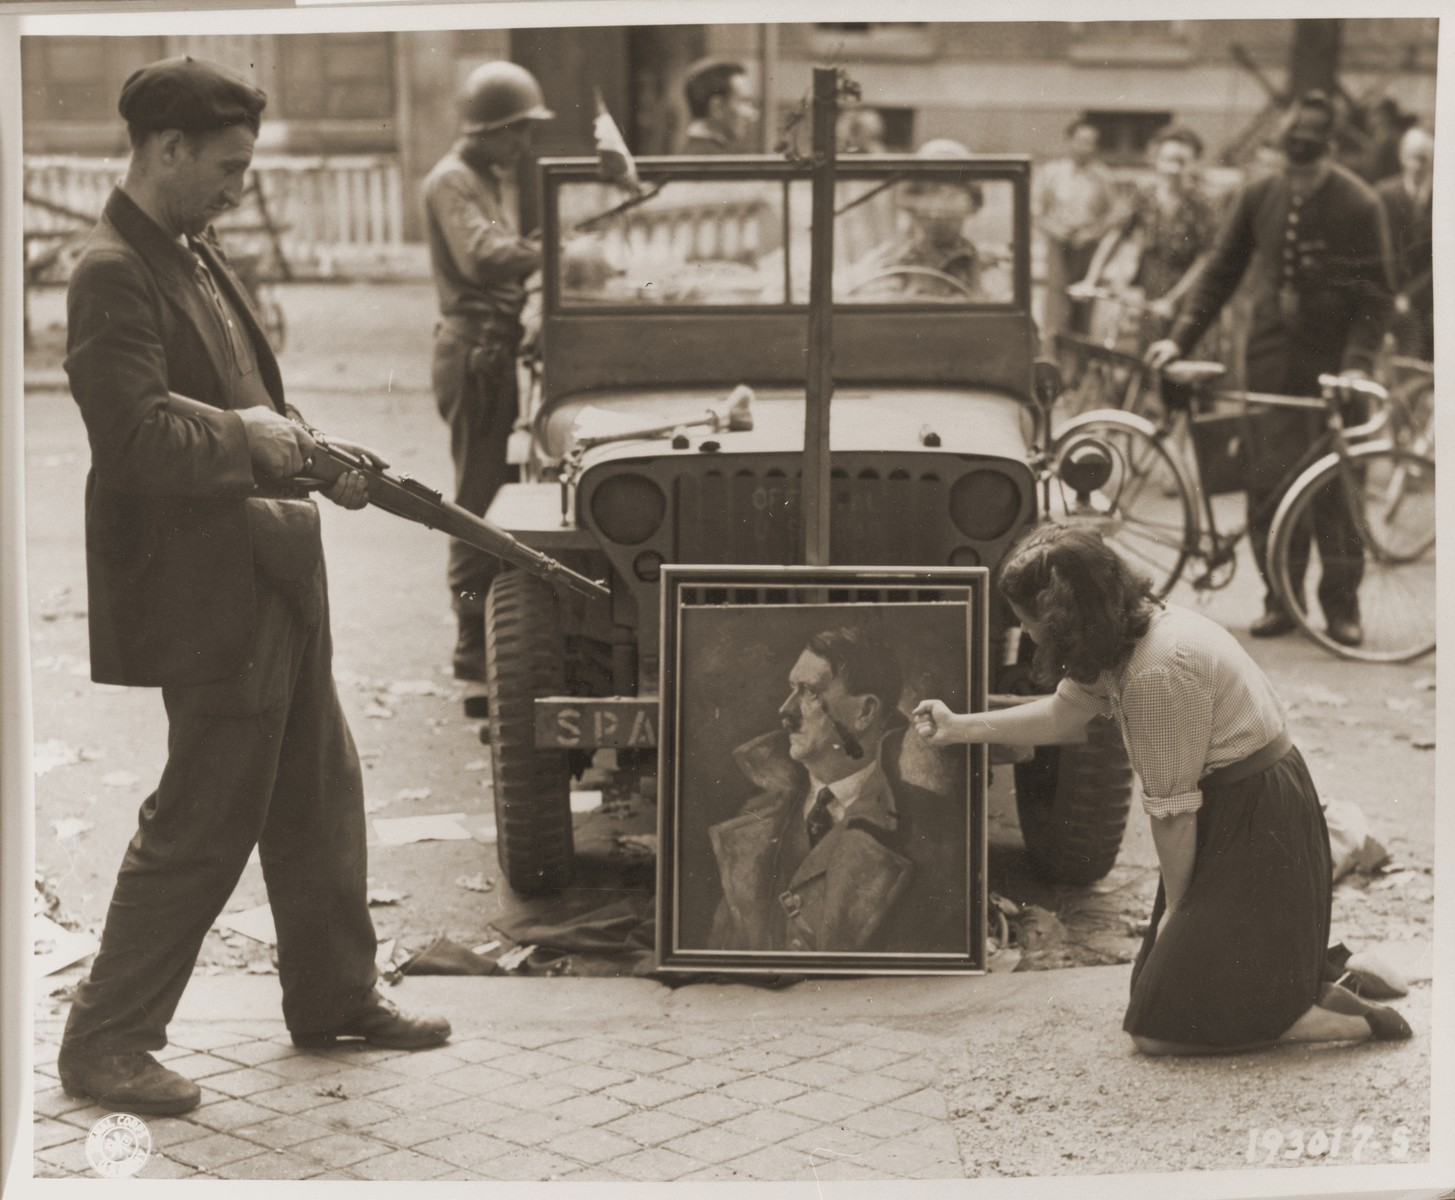 A French civilian and a French resistance fighter deface a portrait of Adolf Hitler.